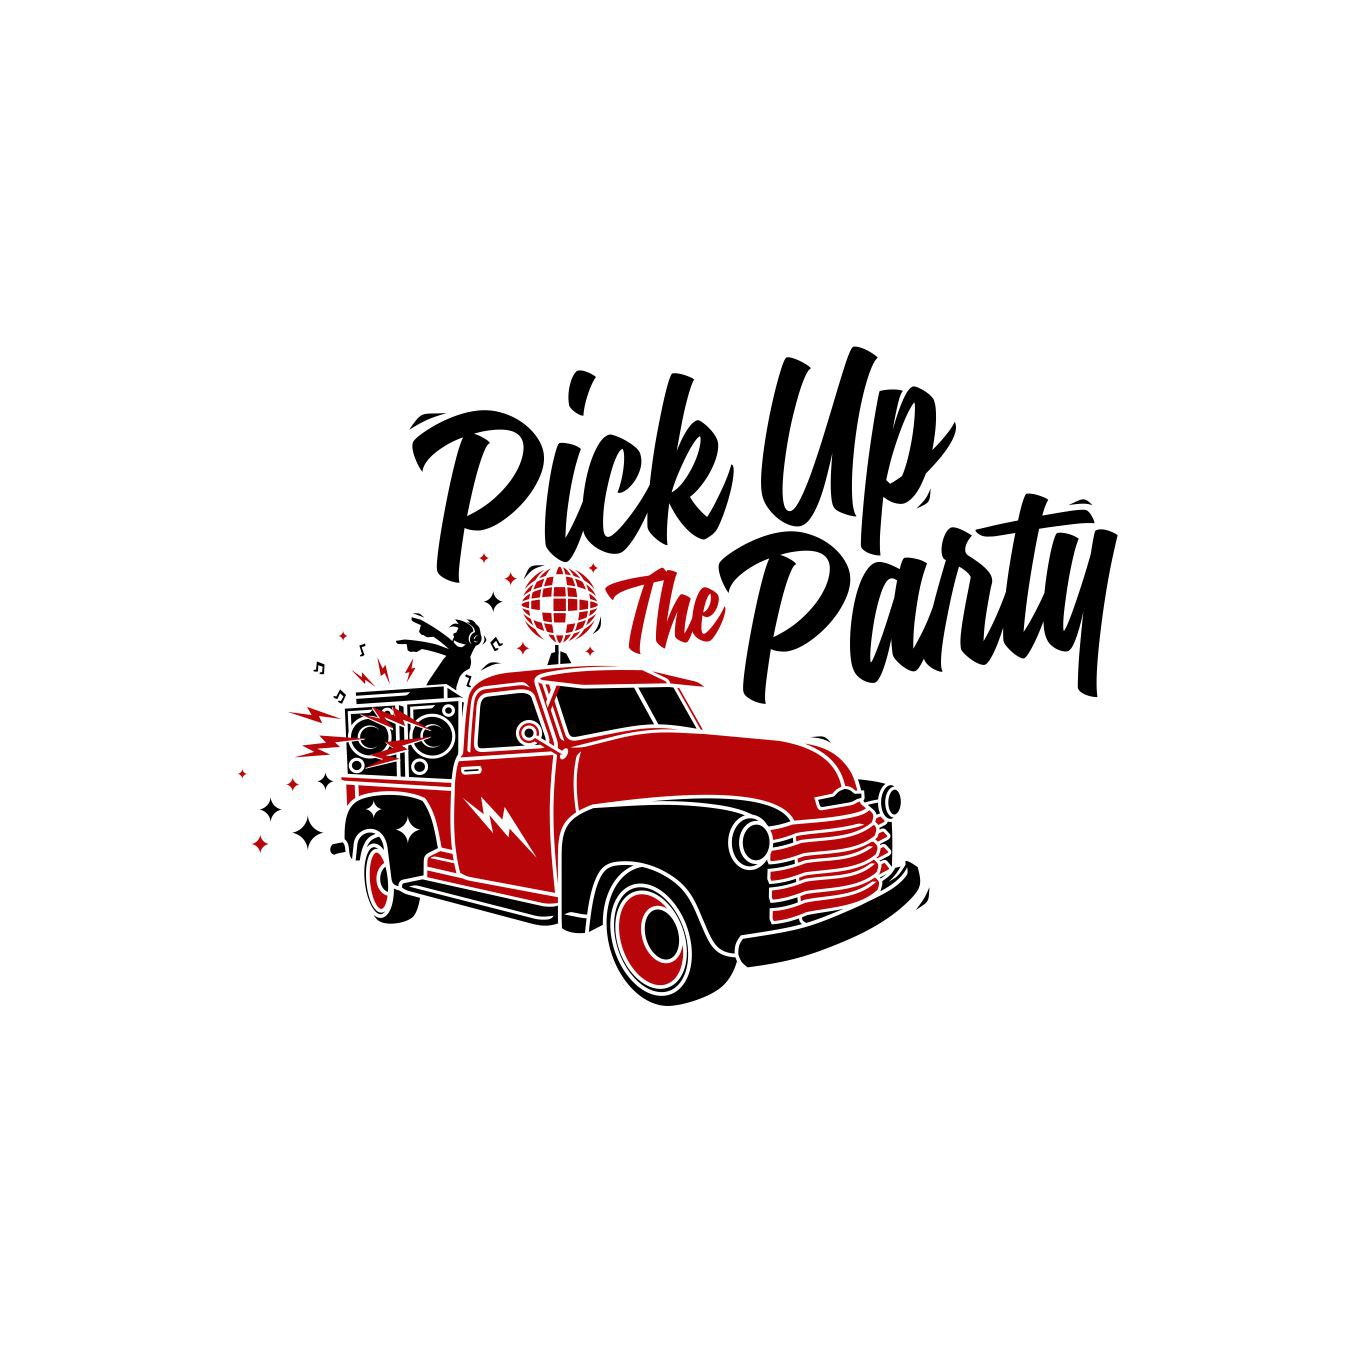 Pick up The party ... let the logo tell the story